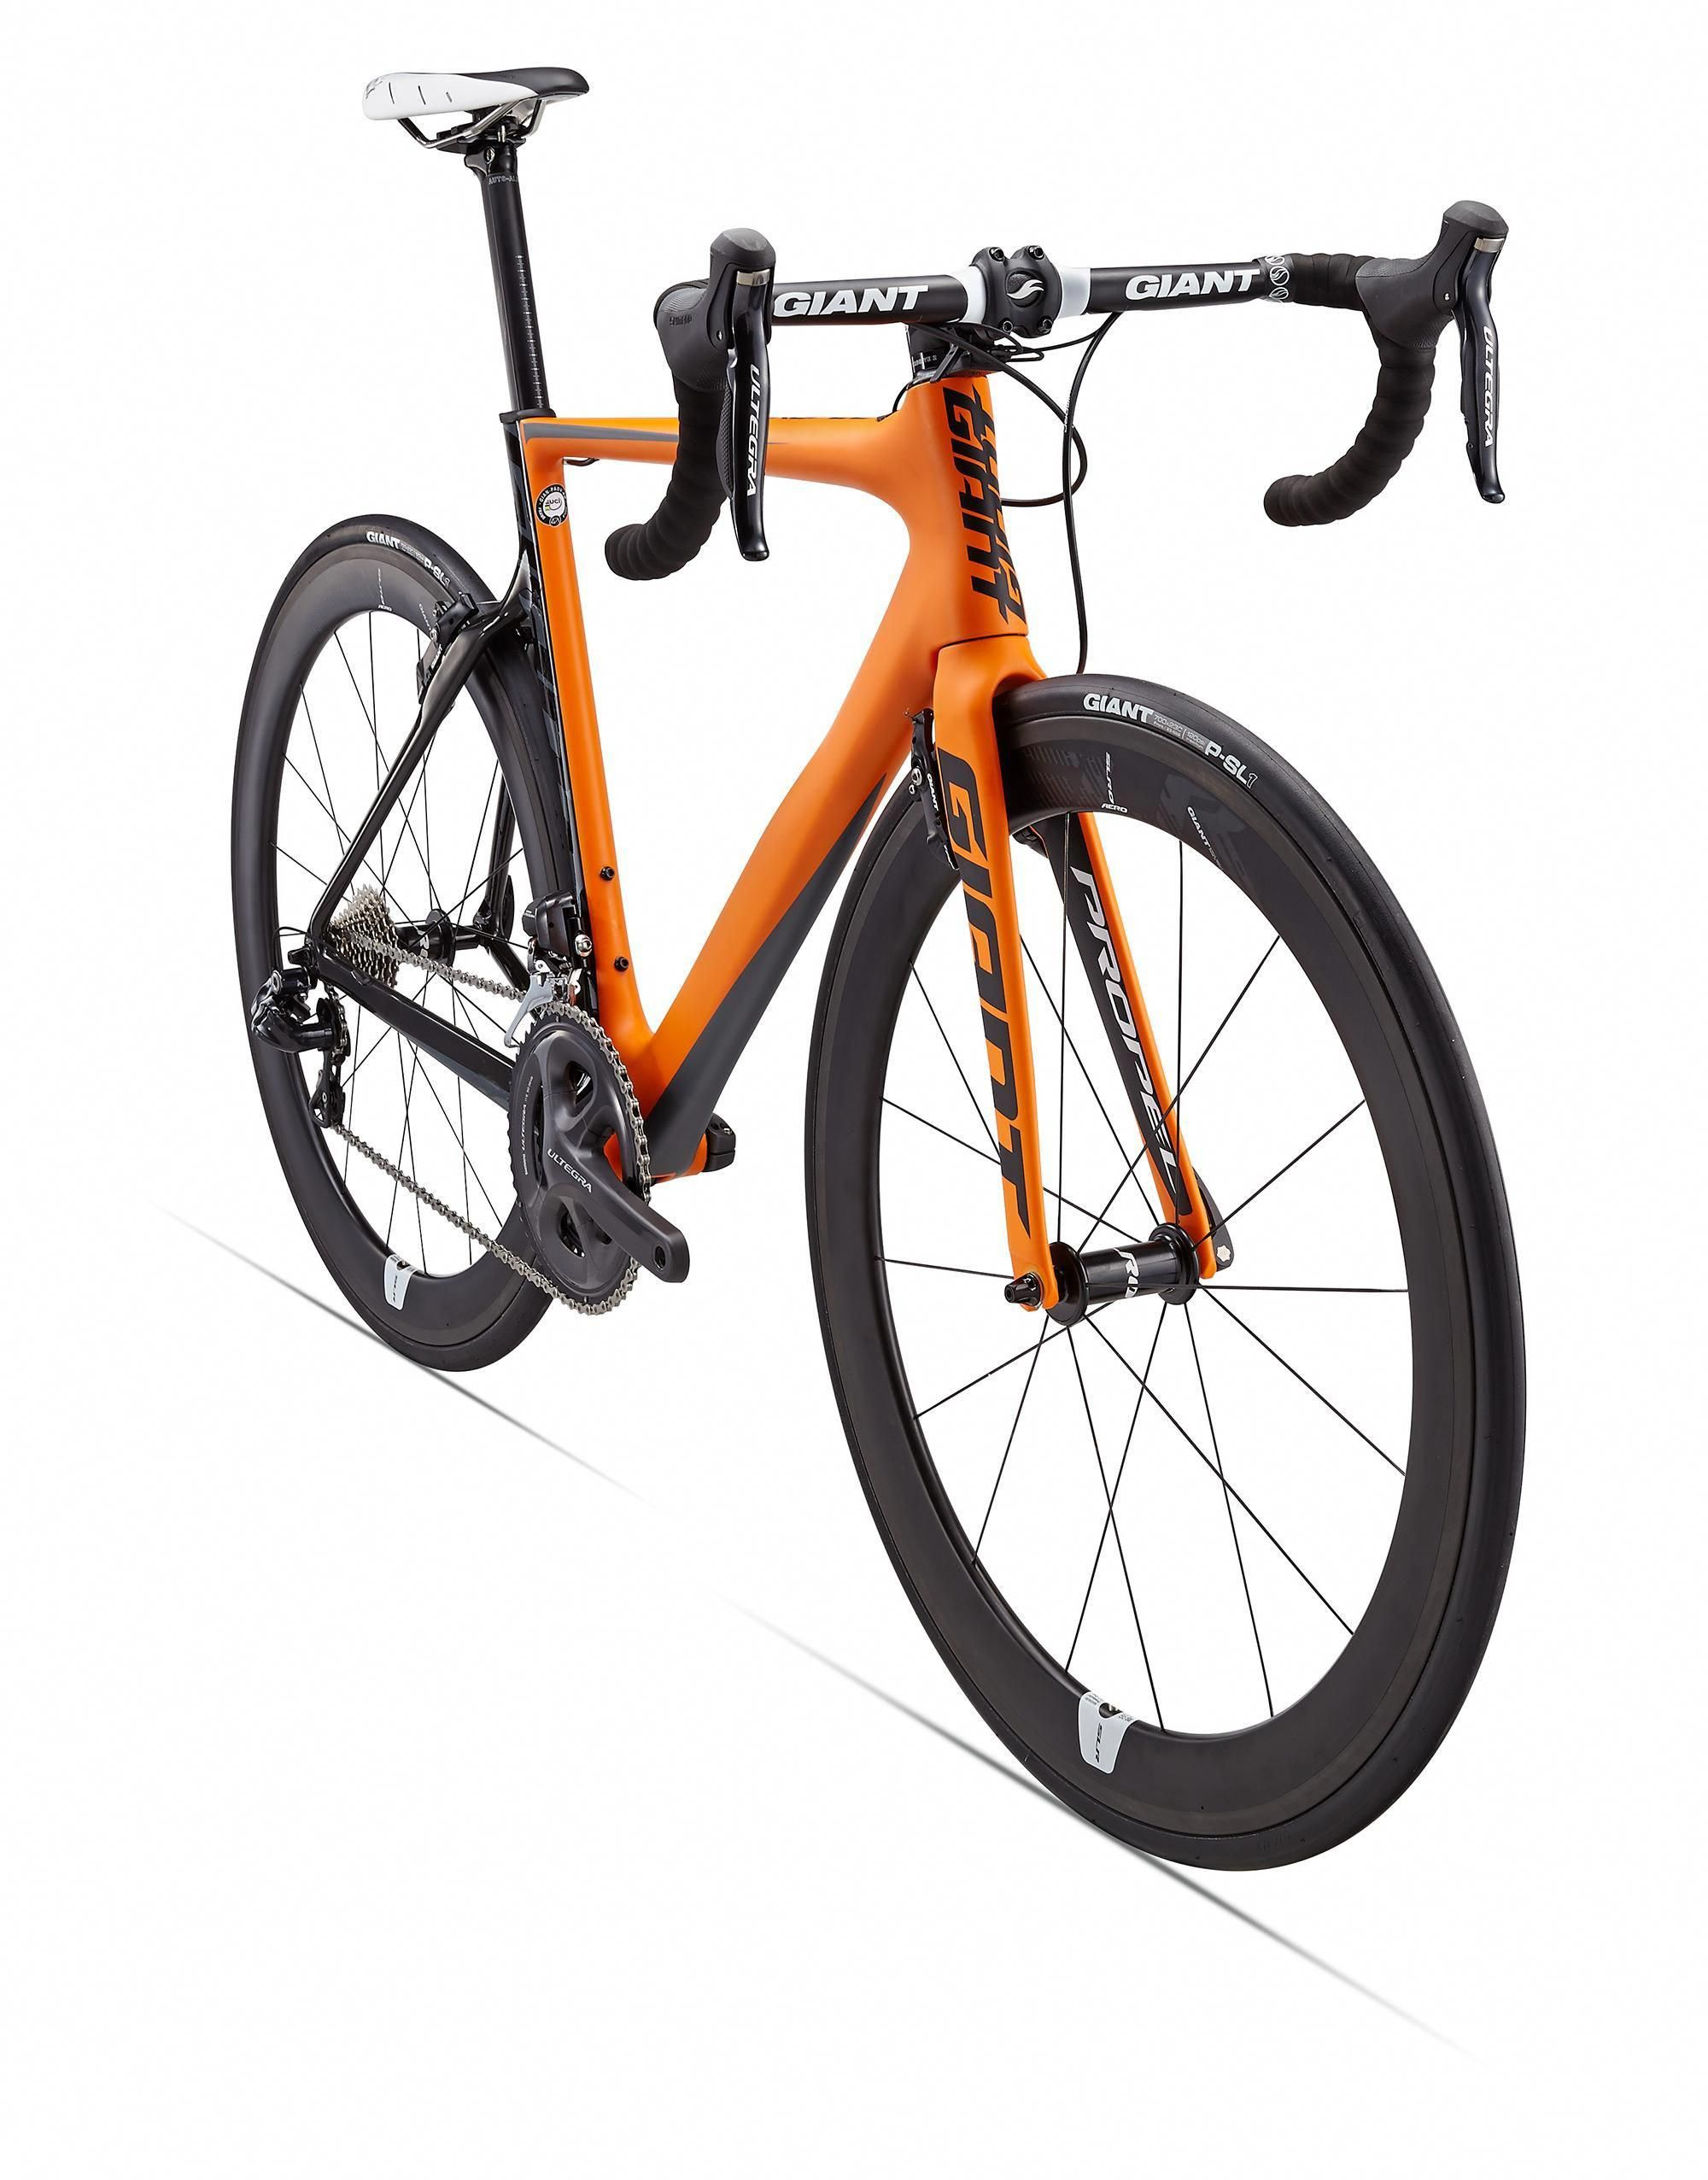 639eff82cae Propel Advanced Pro 0 (2015) | Giant Bicycles / Giant Bikes | Australia  #coolbikeaccessories,roadbikeaccessories,bestroadbikes,roadbikegear,bestwomensbike  ...